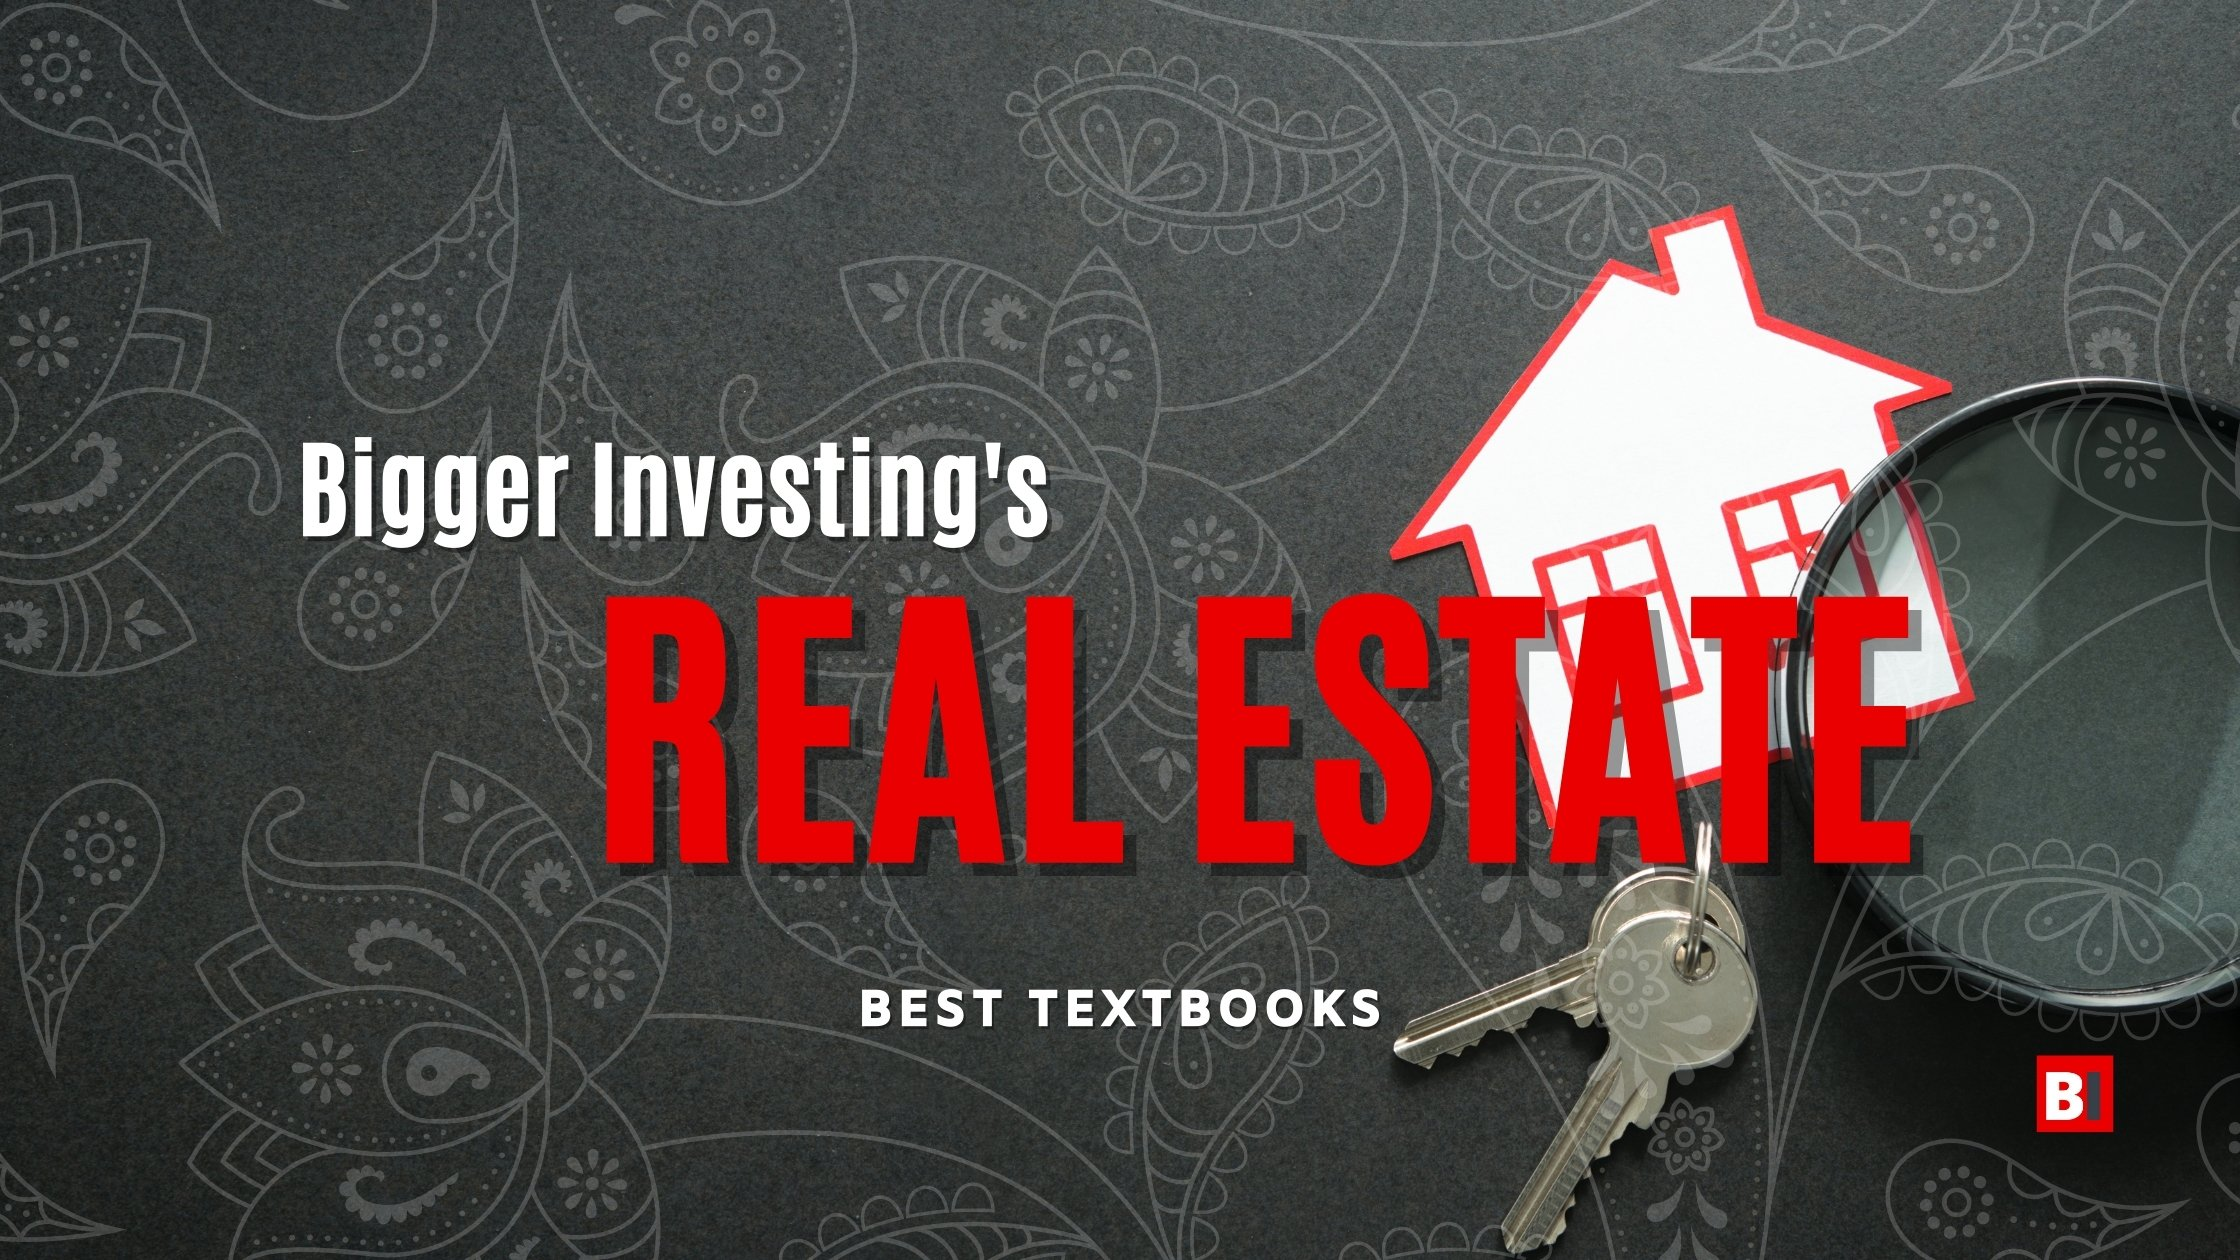 Best Textbooks on Real Estate